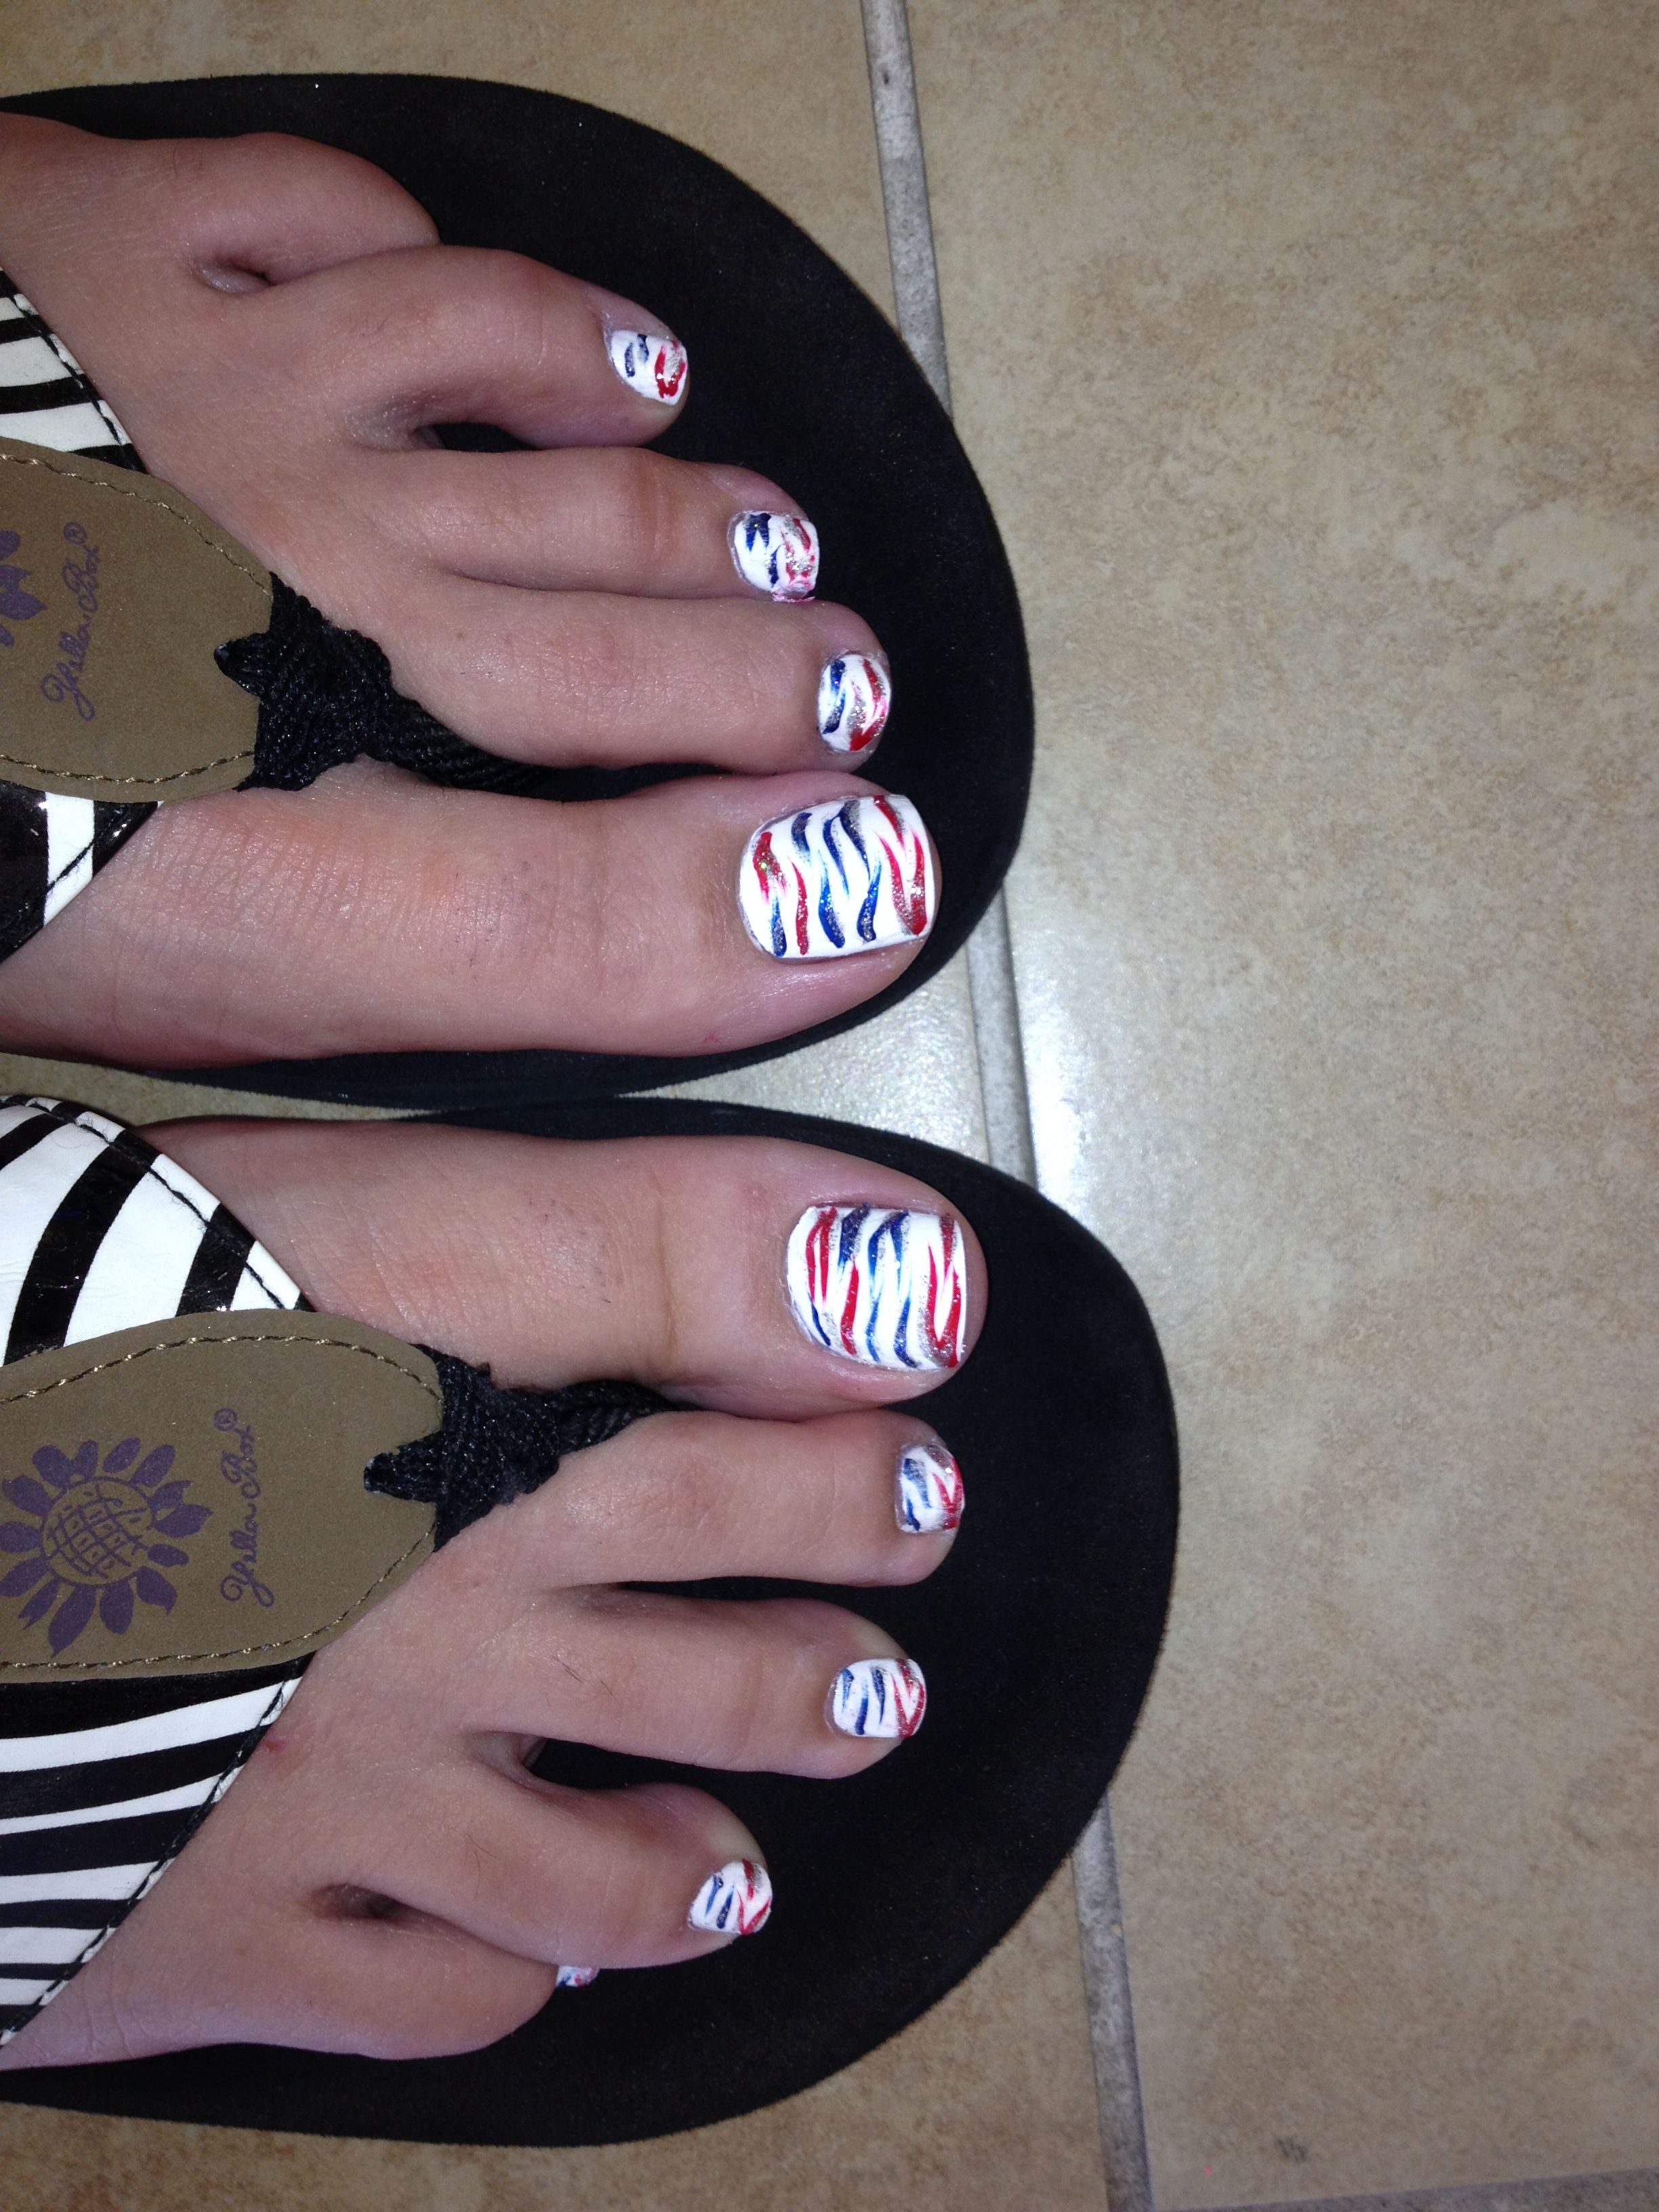 A Cute Pedicure Design I Had Done With Red White And Blue